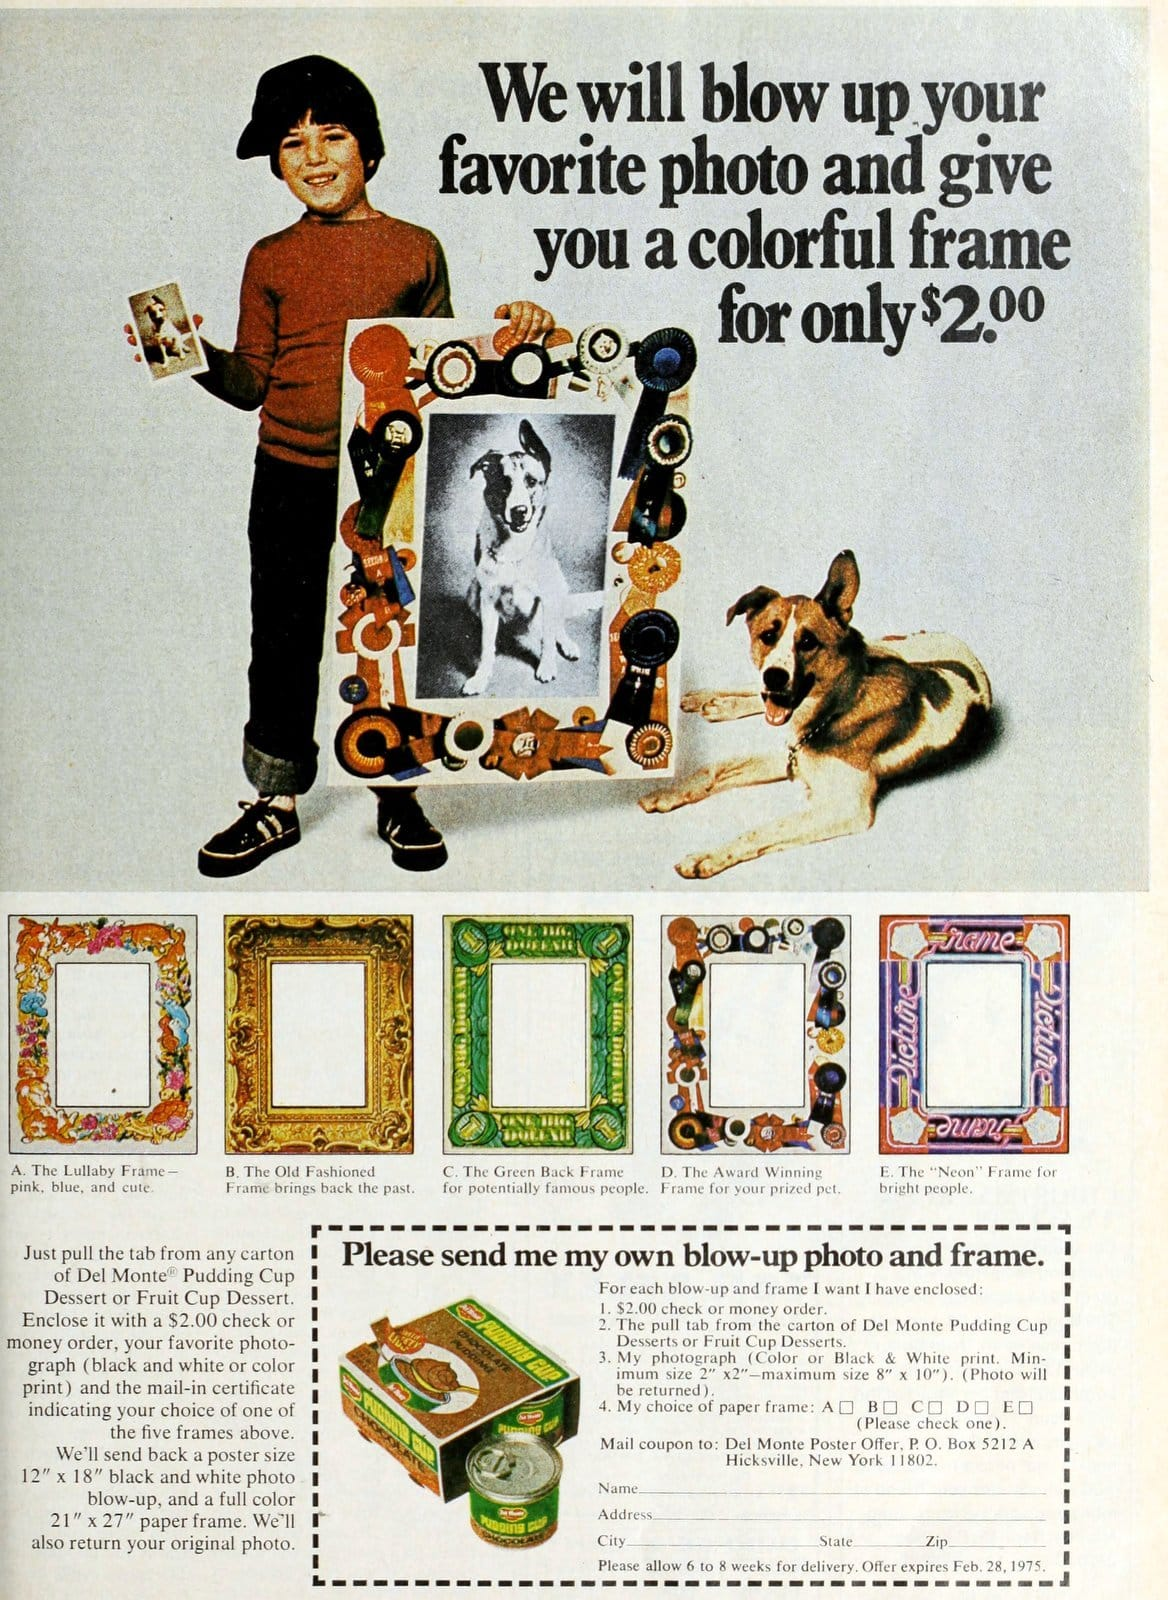 Old Del Monte Pudding cup blow-up photo and frame offer (1973)